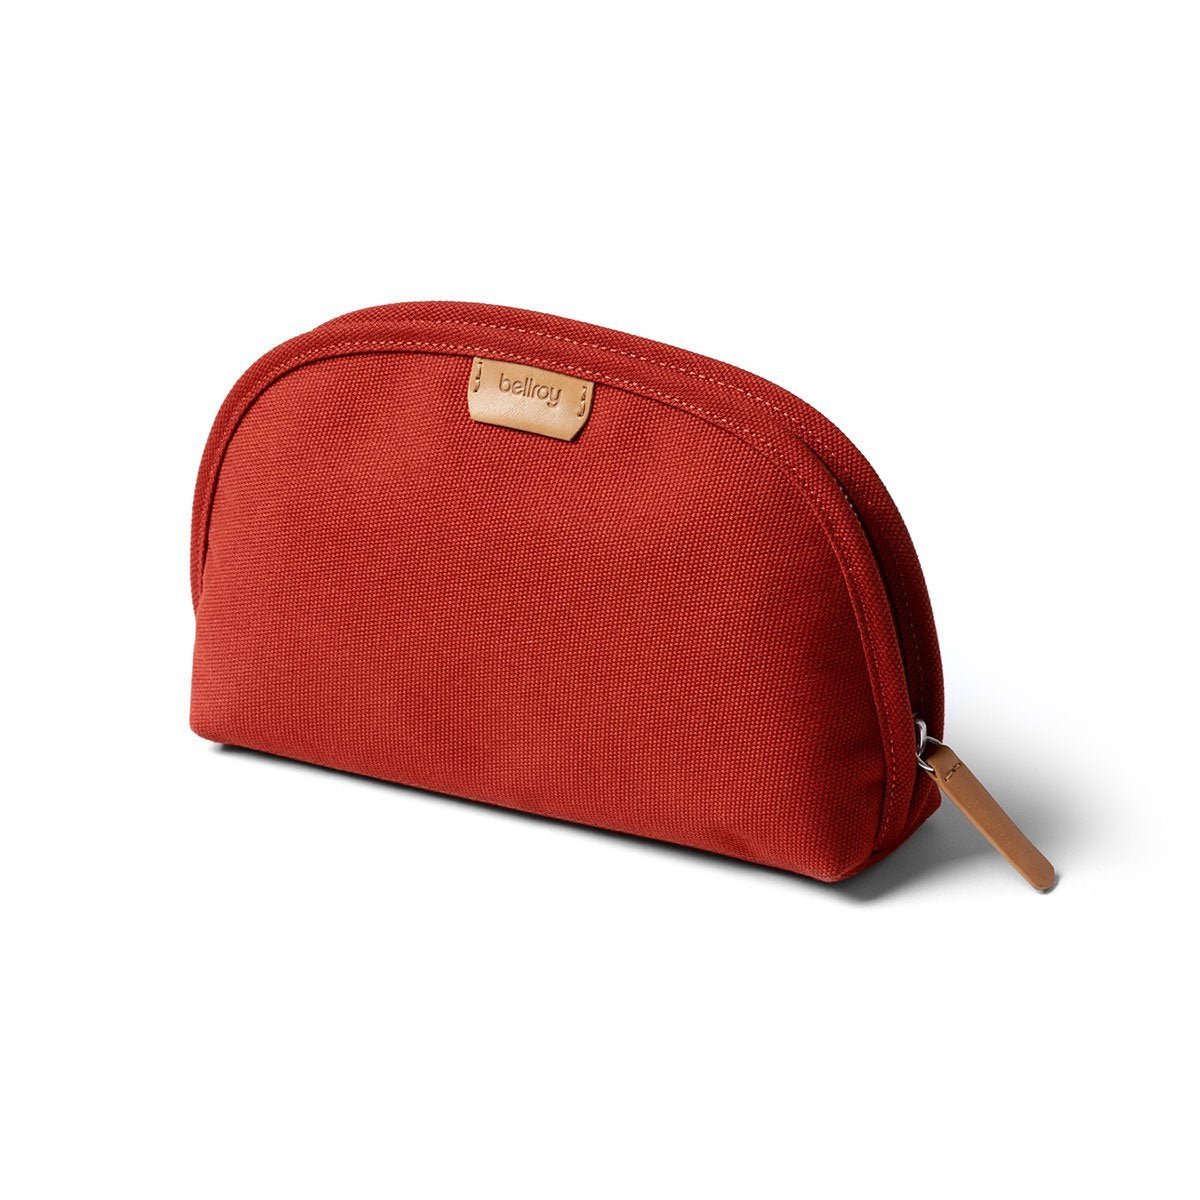 Bellroy | Classic Pouch | EDC Pouch | Travel Washbag | Organiser Pouch | Red Ochre